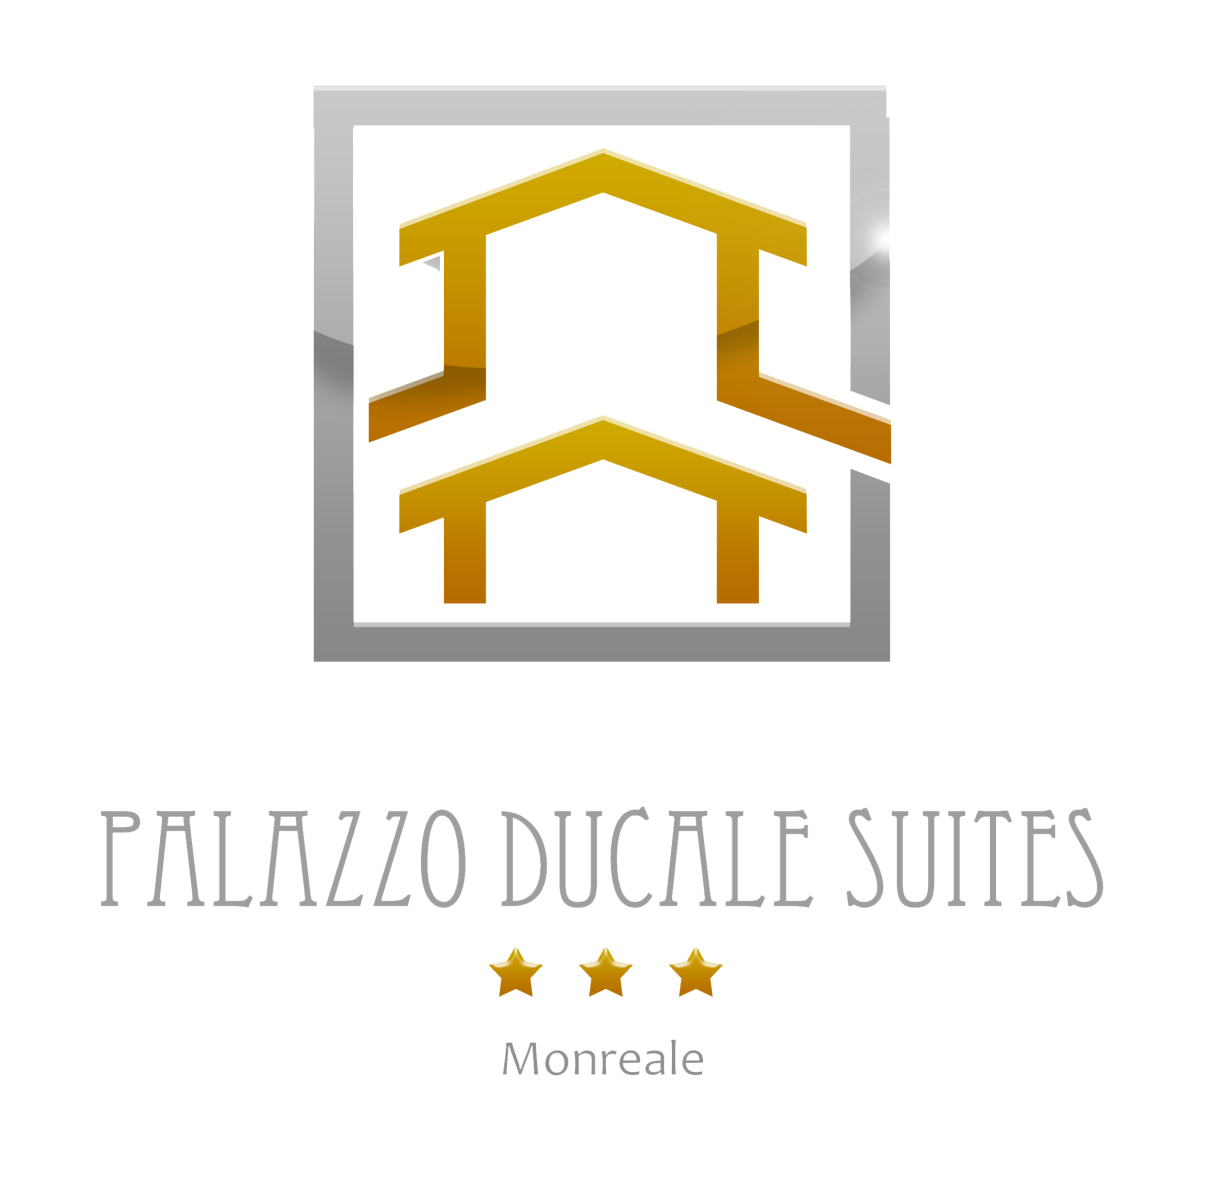 Hotel Management Software Clients - Palazzo Ducale Suites